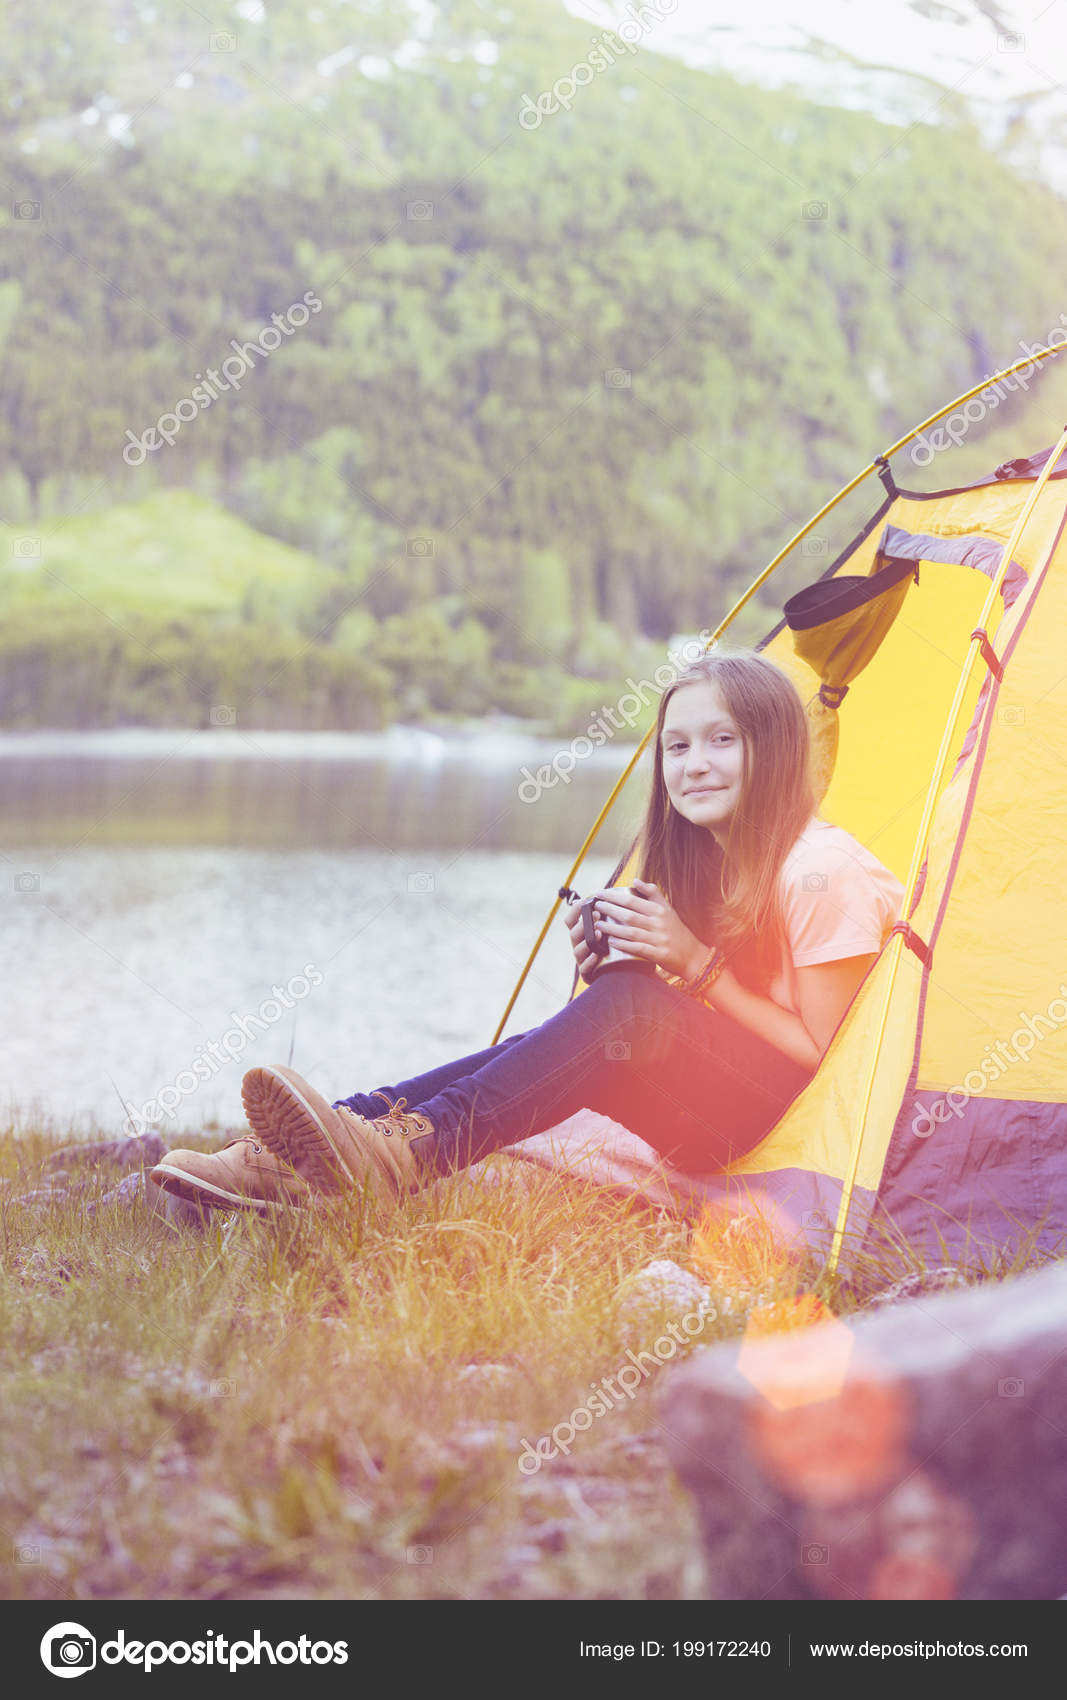 Smiling Girl Hiker Tent Holding Cup Mountains Backgroun u2014 Stock Photo  sc 1 st  Depositphotos & Smiling Girl Hiker Tent Holding Cup Mountains Backgroun u2014 Stock ...